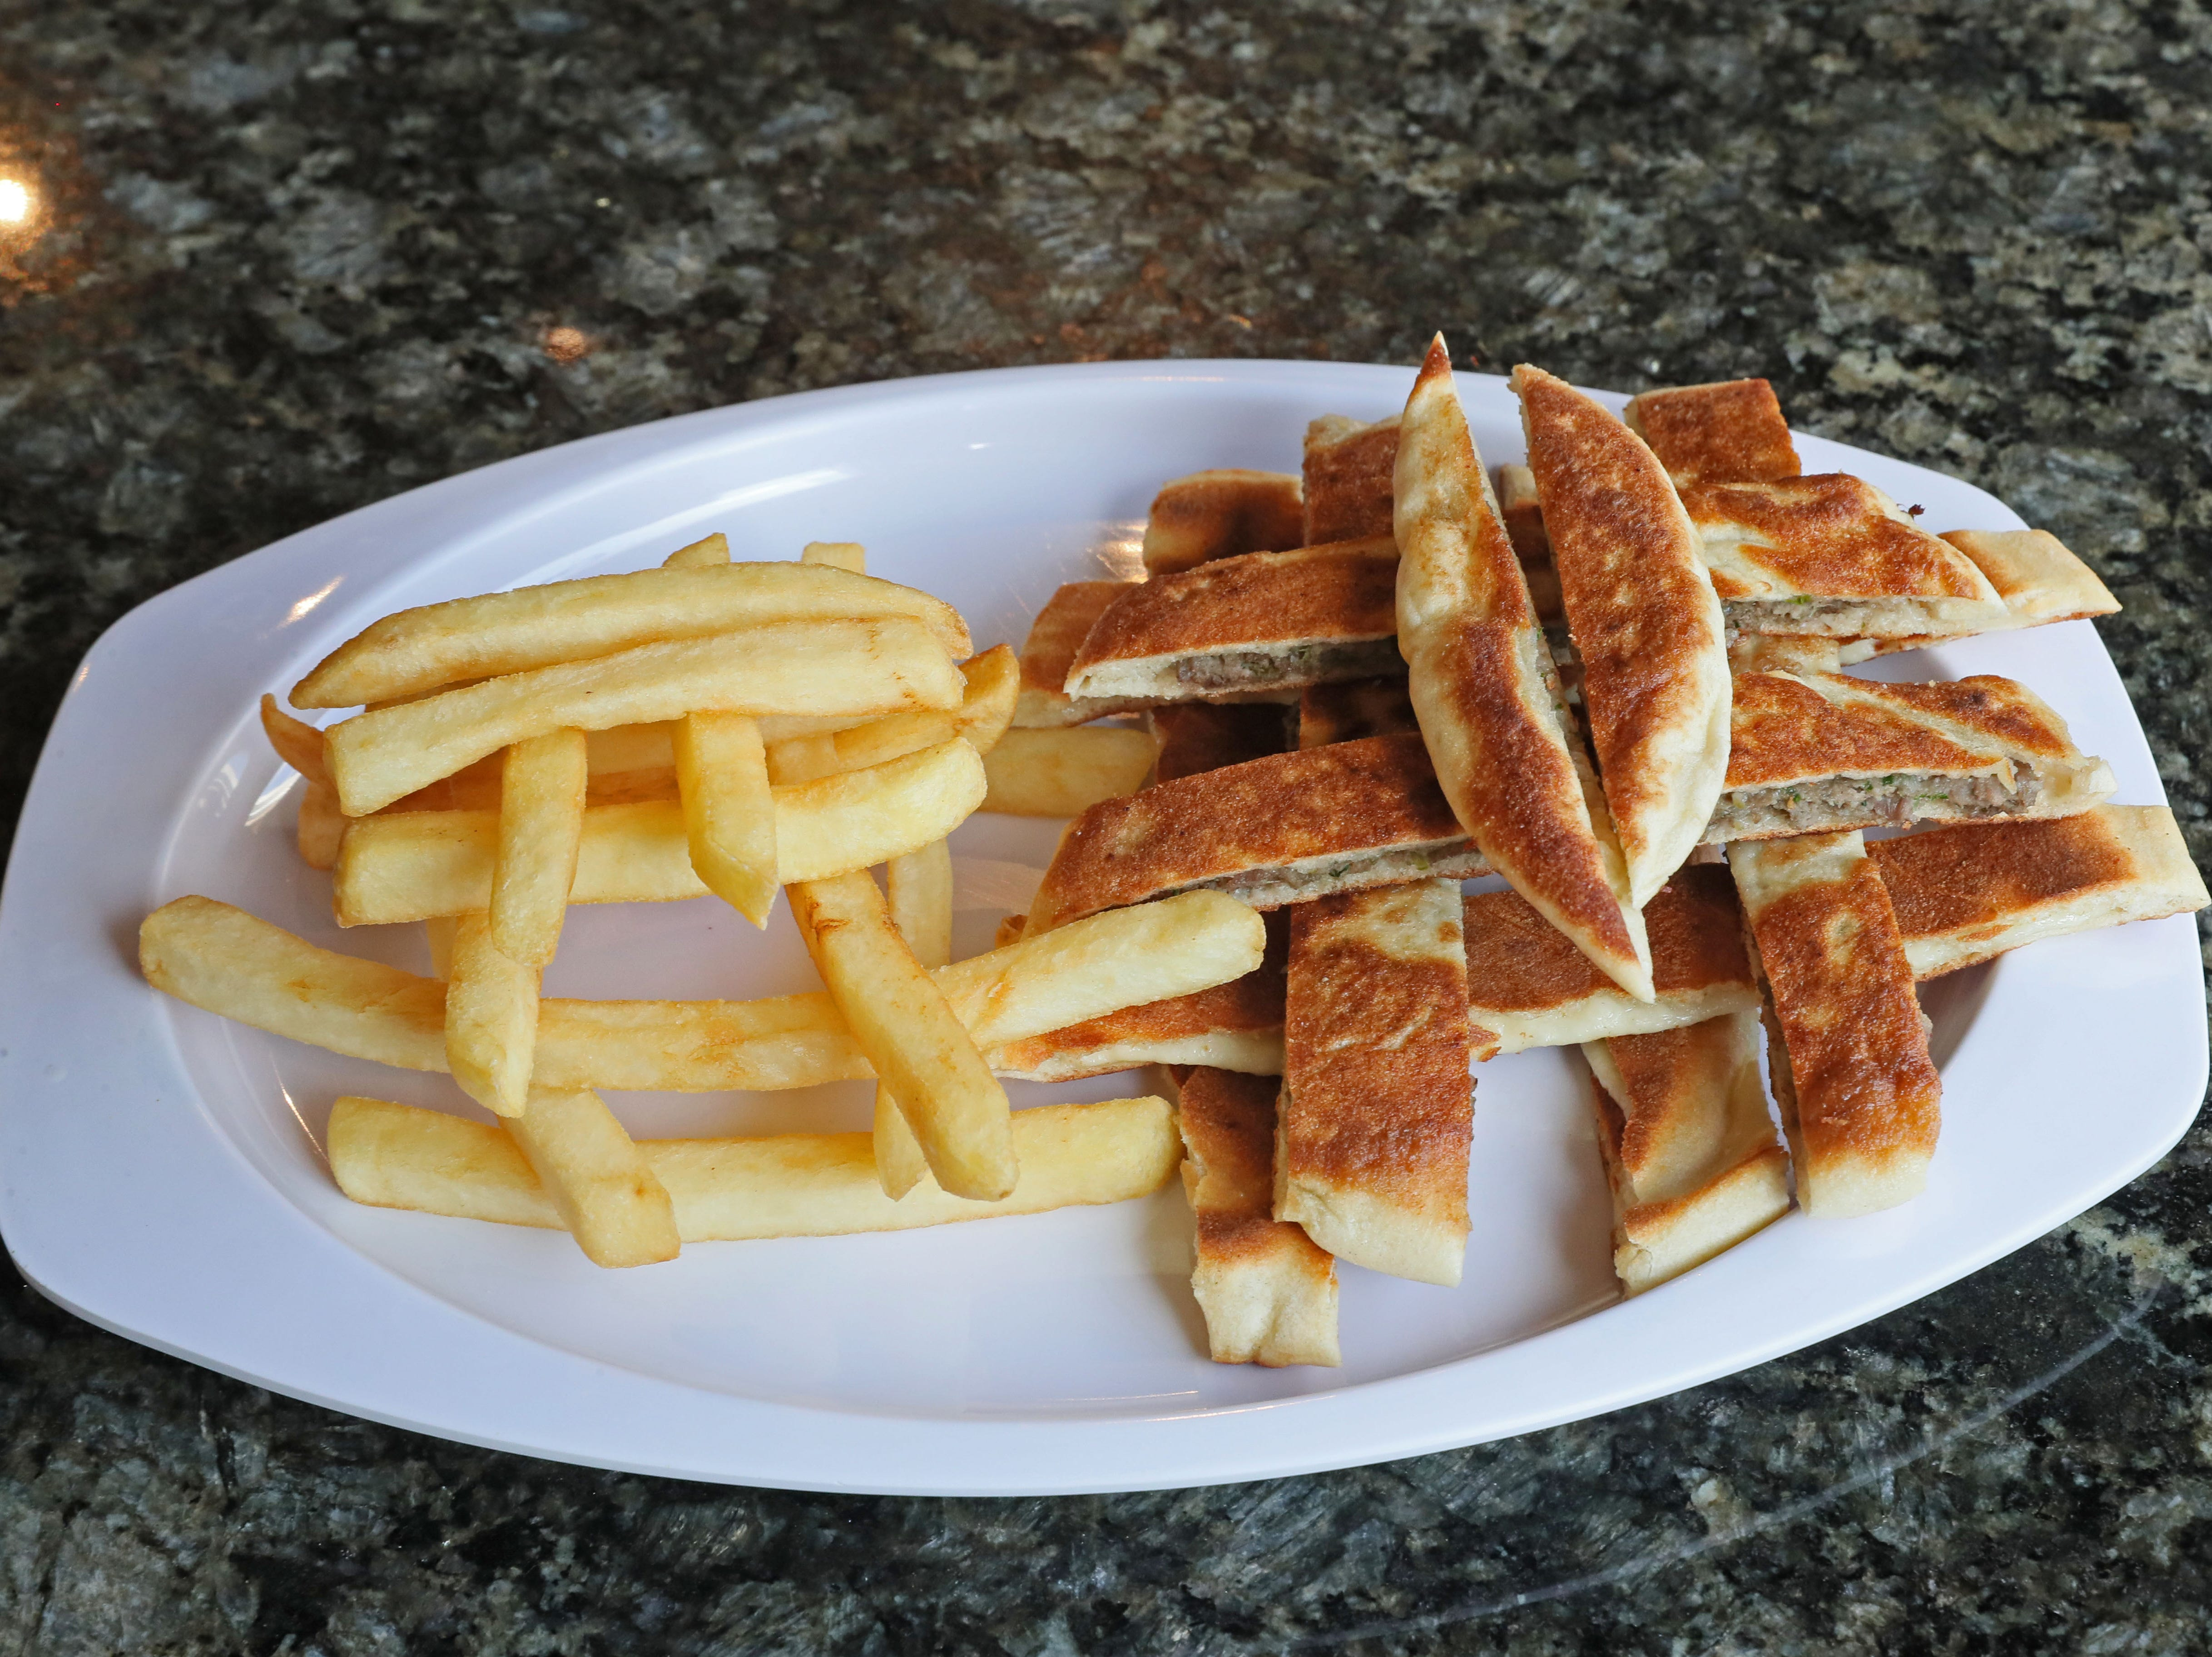 Arayes, pita that's stuffed with beef or cheese and baked, is served whole for adults; here it's shown sliced and served with fries for Pita Palace's children's menu.